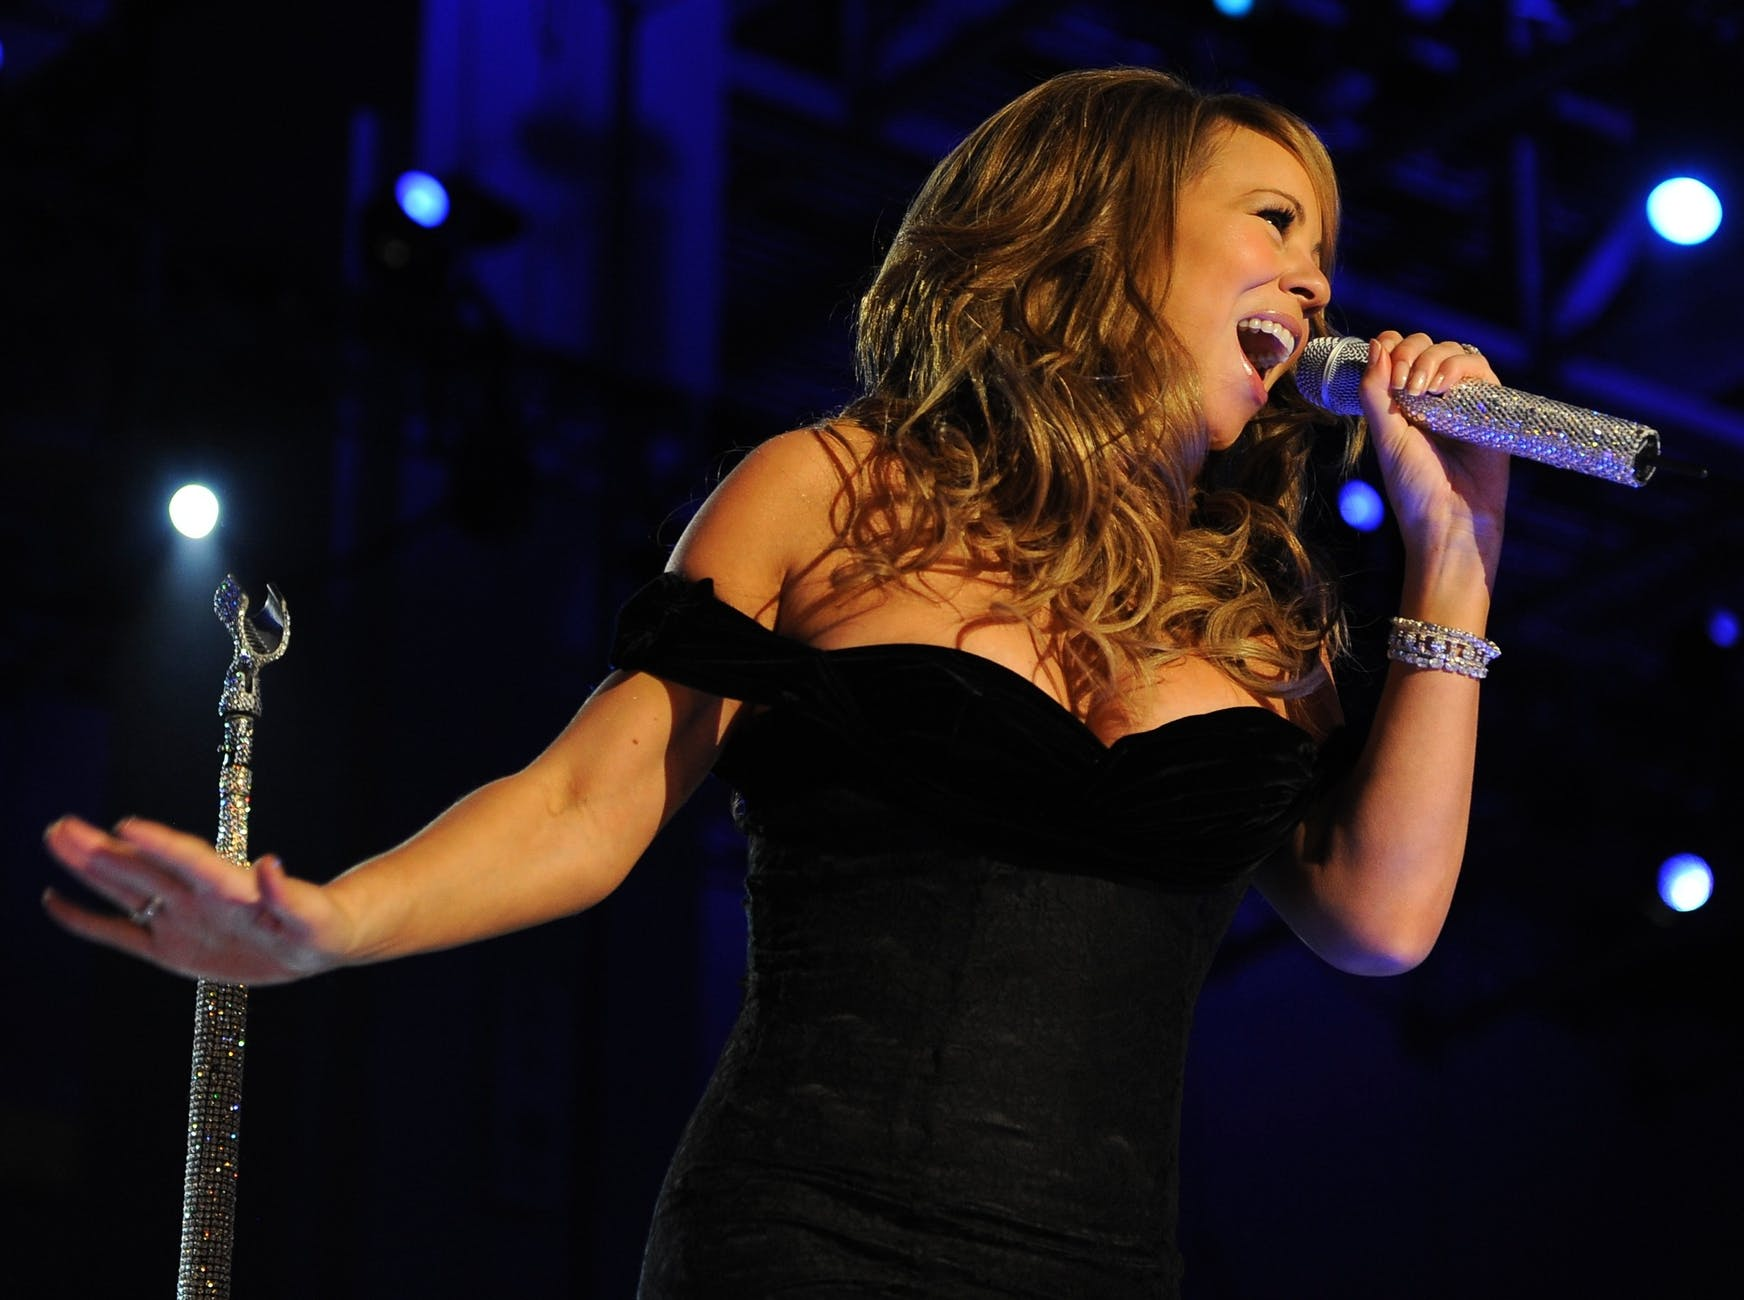 woman-mariah-carey-singer-entertainer-65702.jpeg